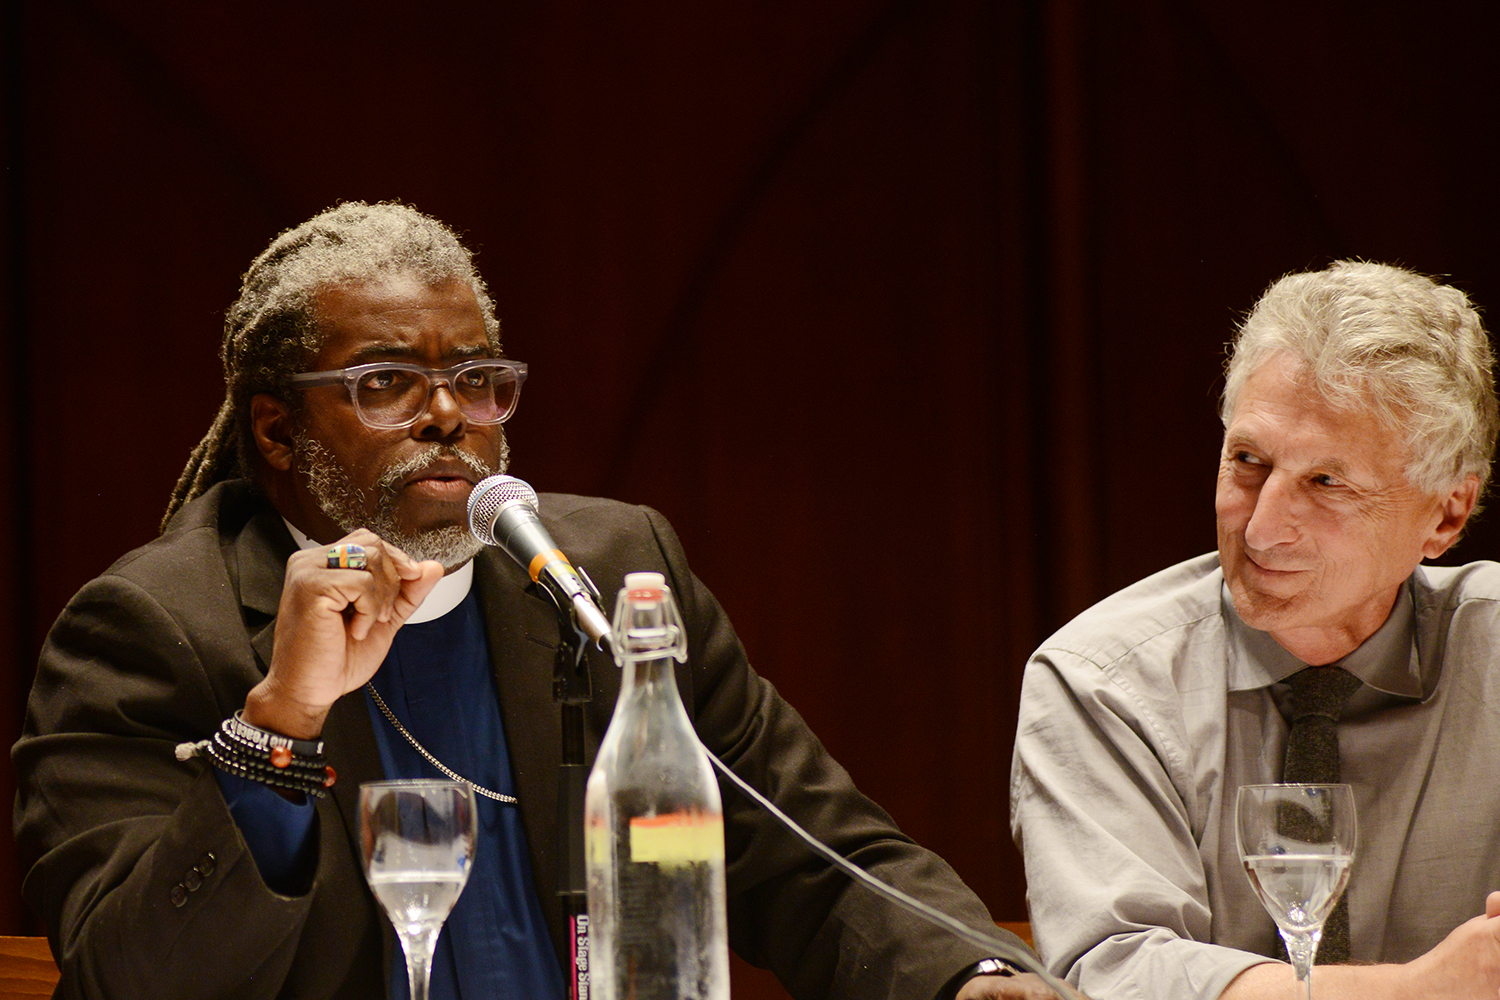 At right, Rob Rosenthal, director of the Allbritton Center for the Study of Public Life, John E. Andrus Professor of Sociology, listens to Rev. Selders. Rosenthal moderated the panel.